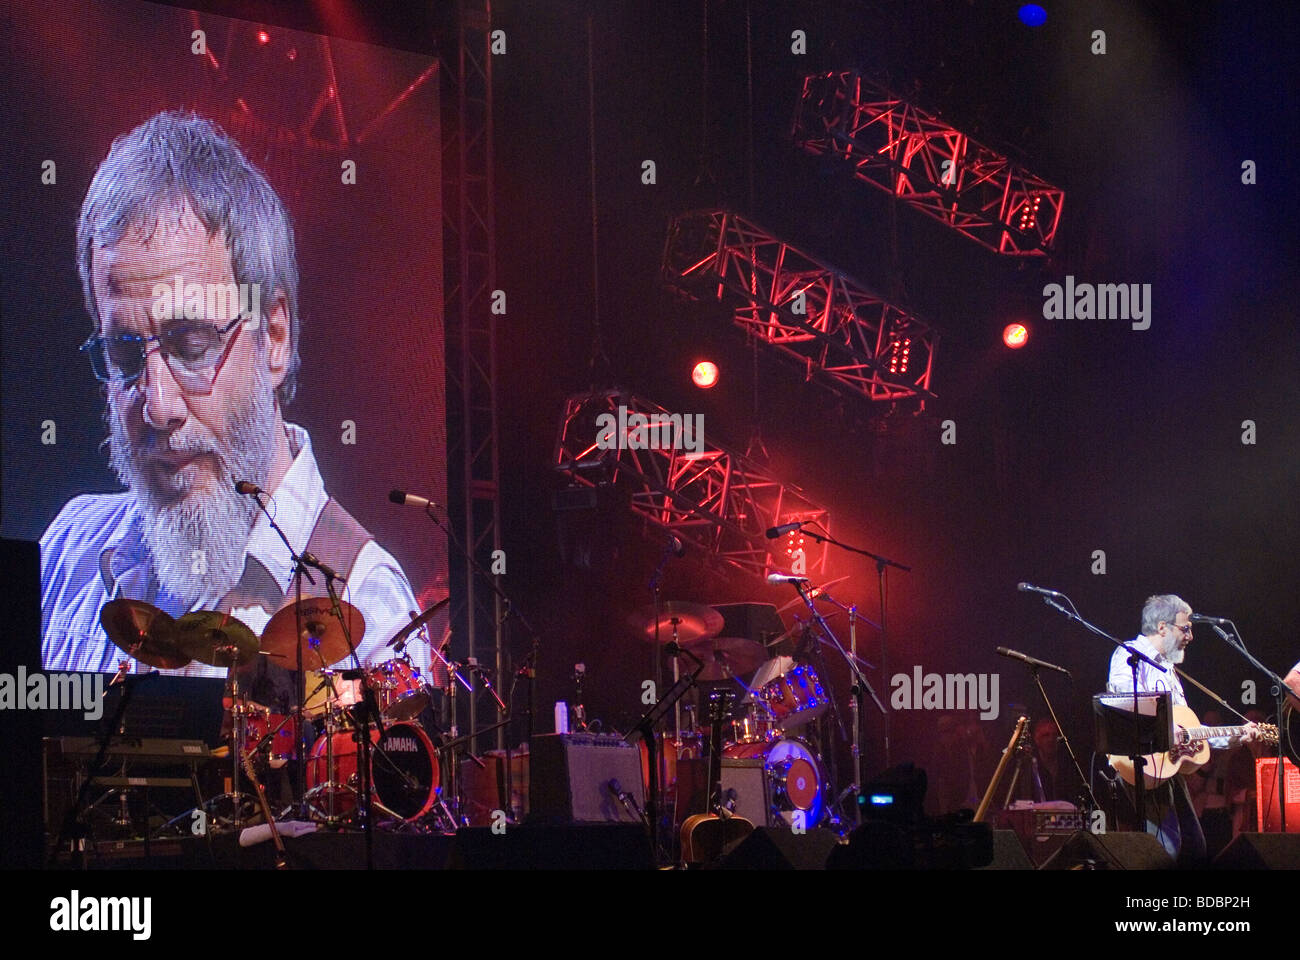 Yusuf Islam Cat Stevens performing at the Fairport Cropredy Convention music festival 2009 This was the first musicStock Photo